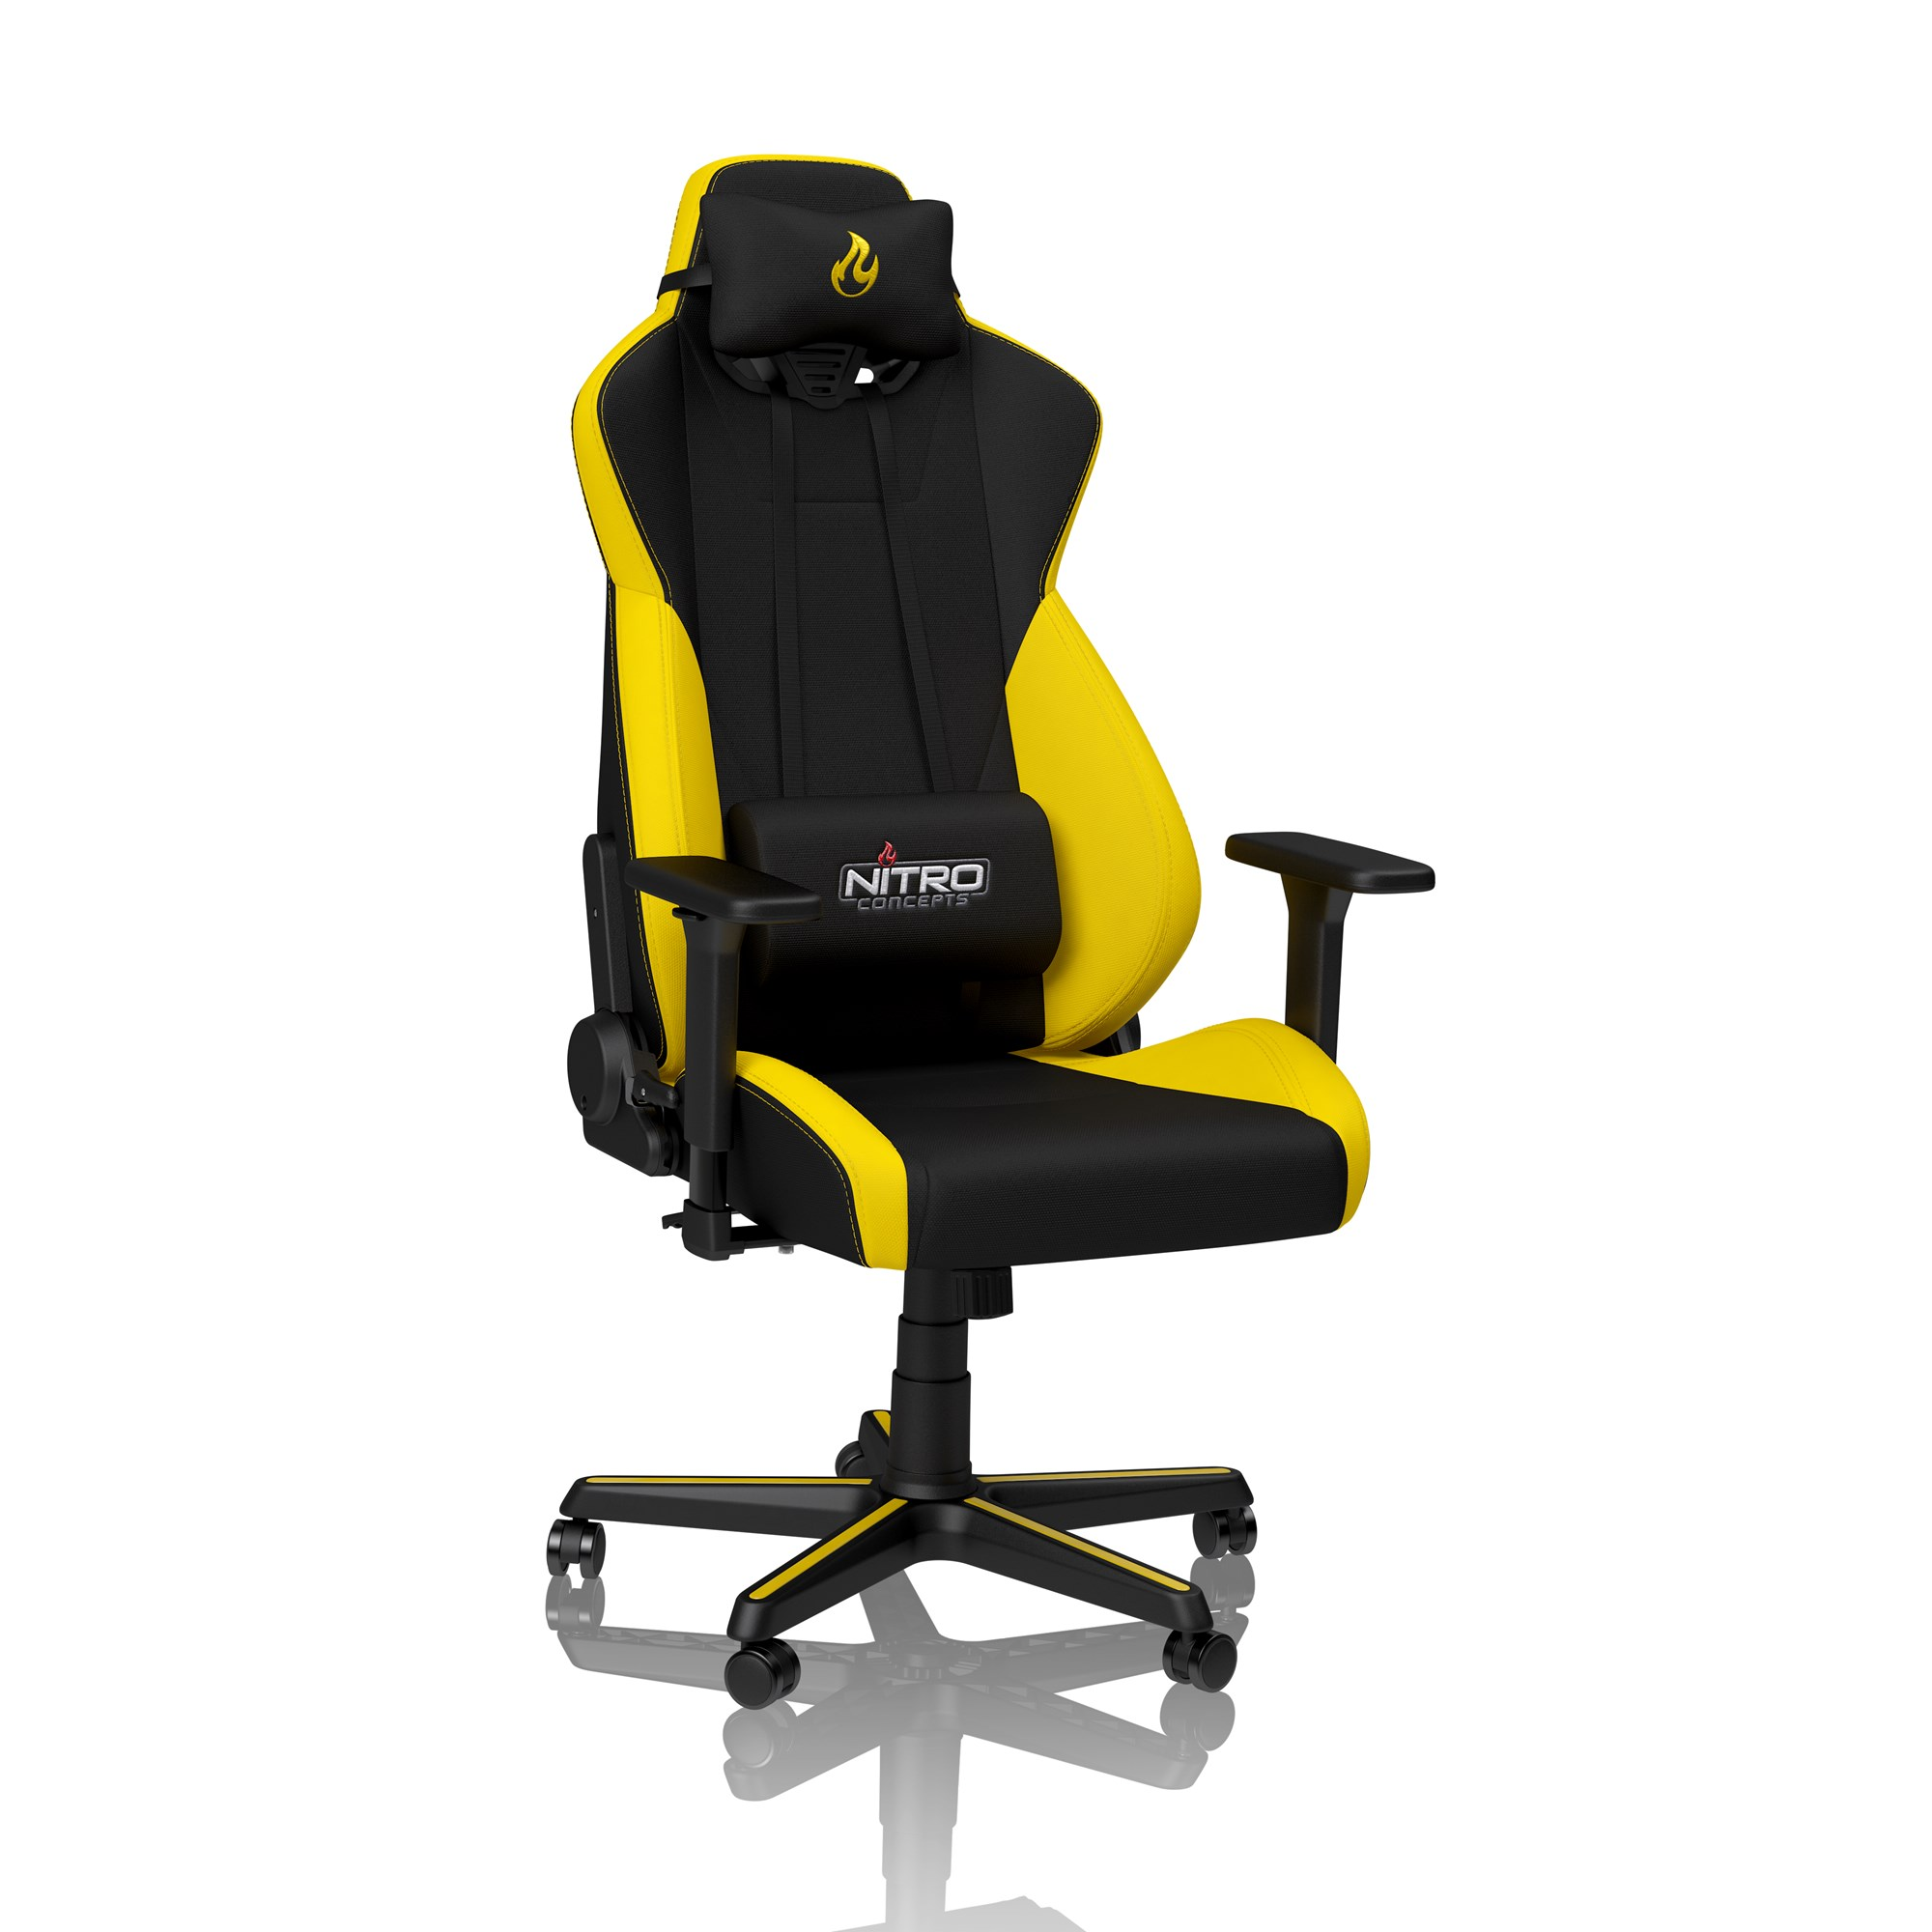 Nitro Concepts S300 Fabric Gaming Chair